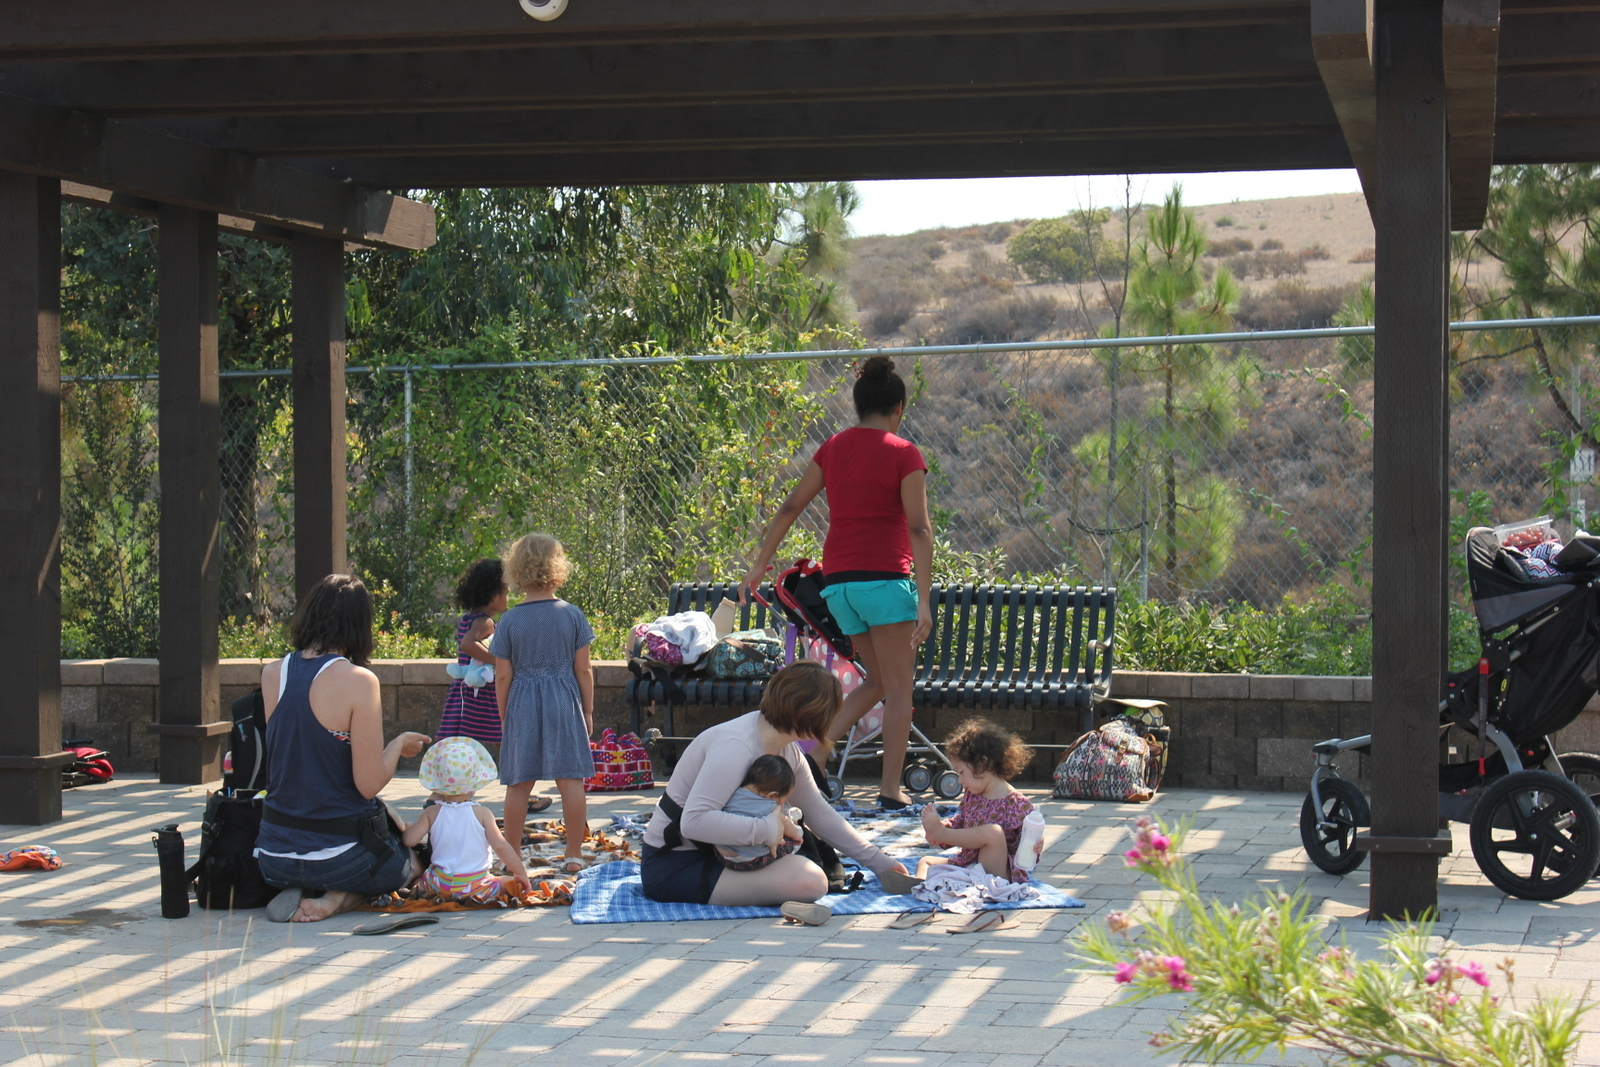 Friends enjoy a shady picnic area at the craftsman bungalow.